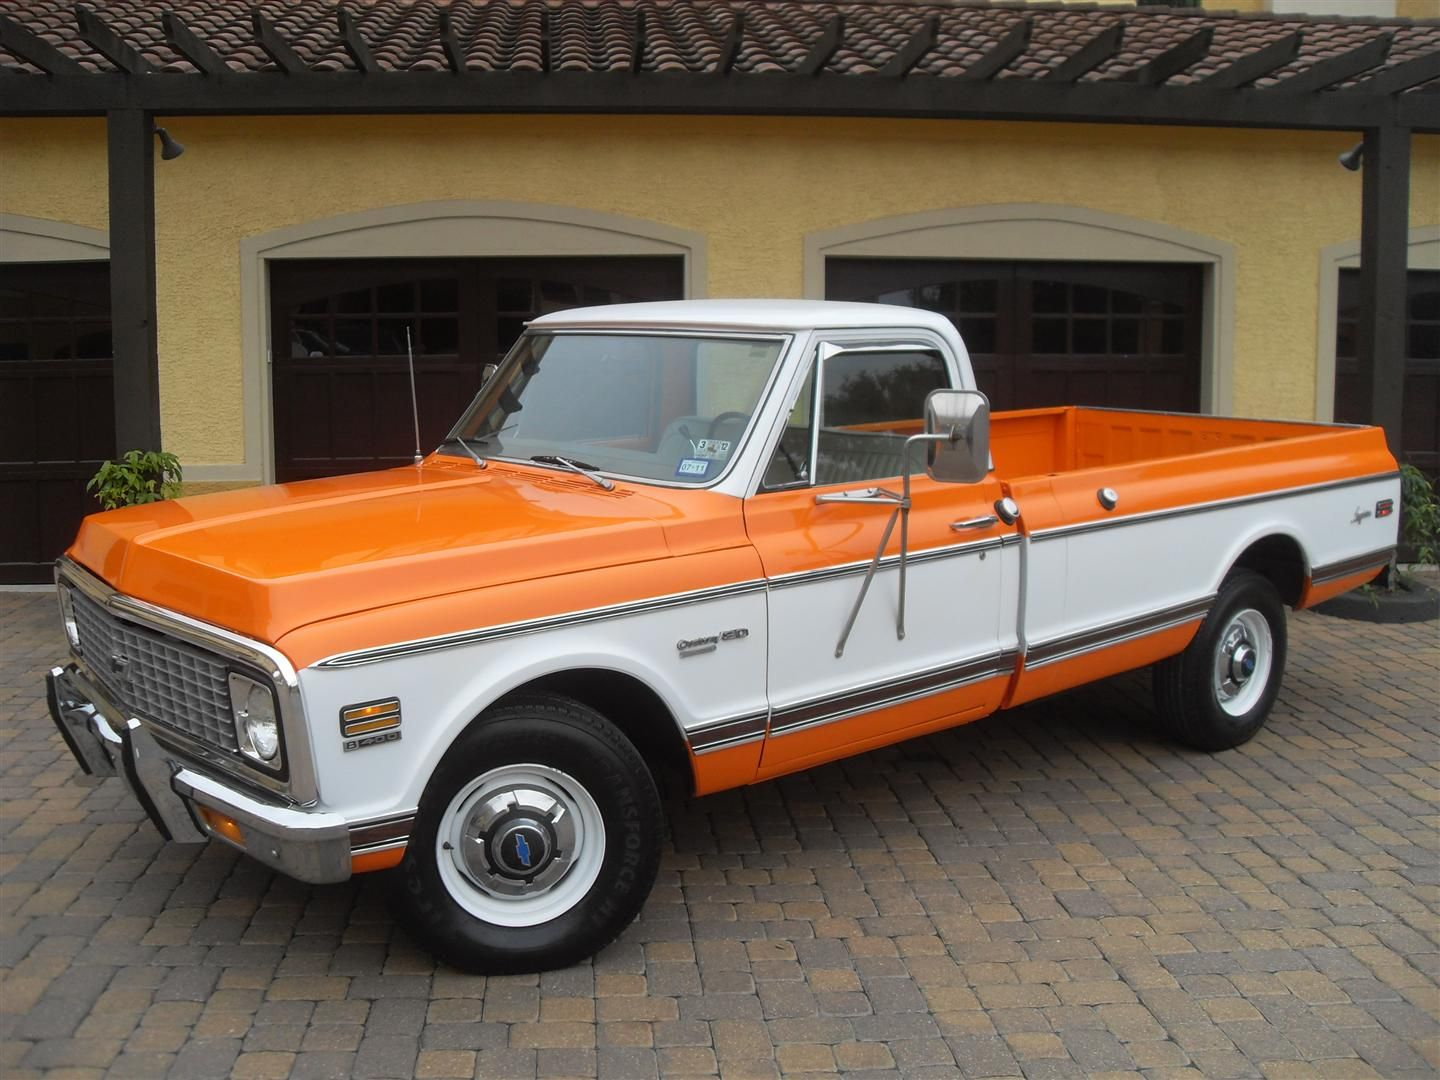 1970 Chevy dual tank truck | Classic Muscle Cars & Other ...